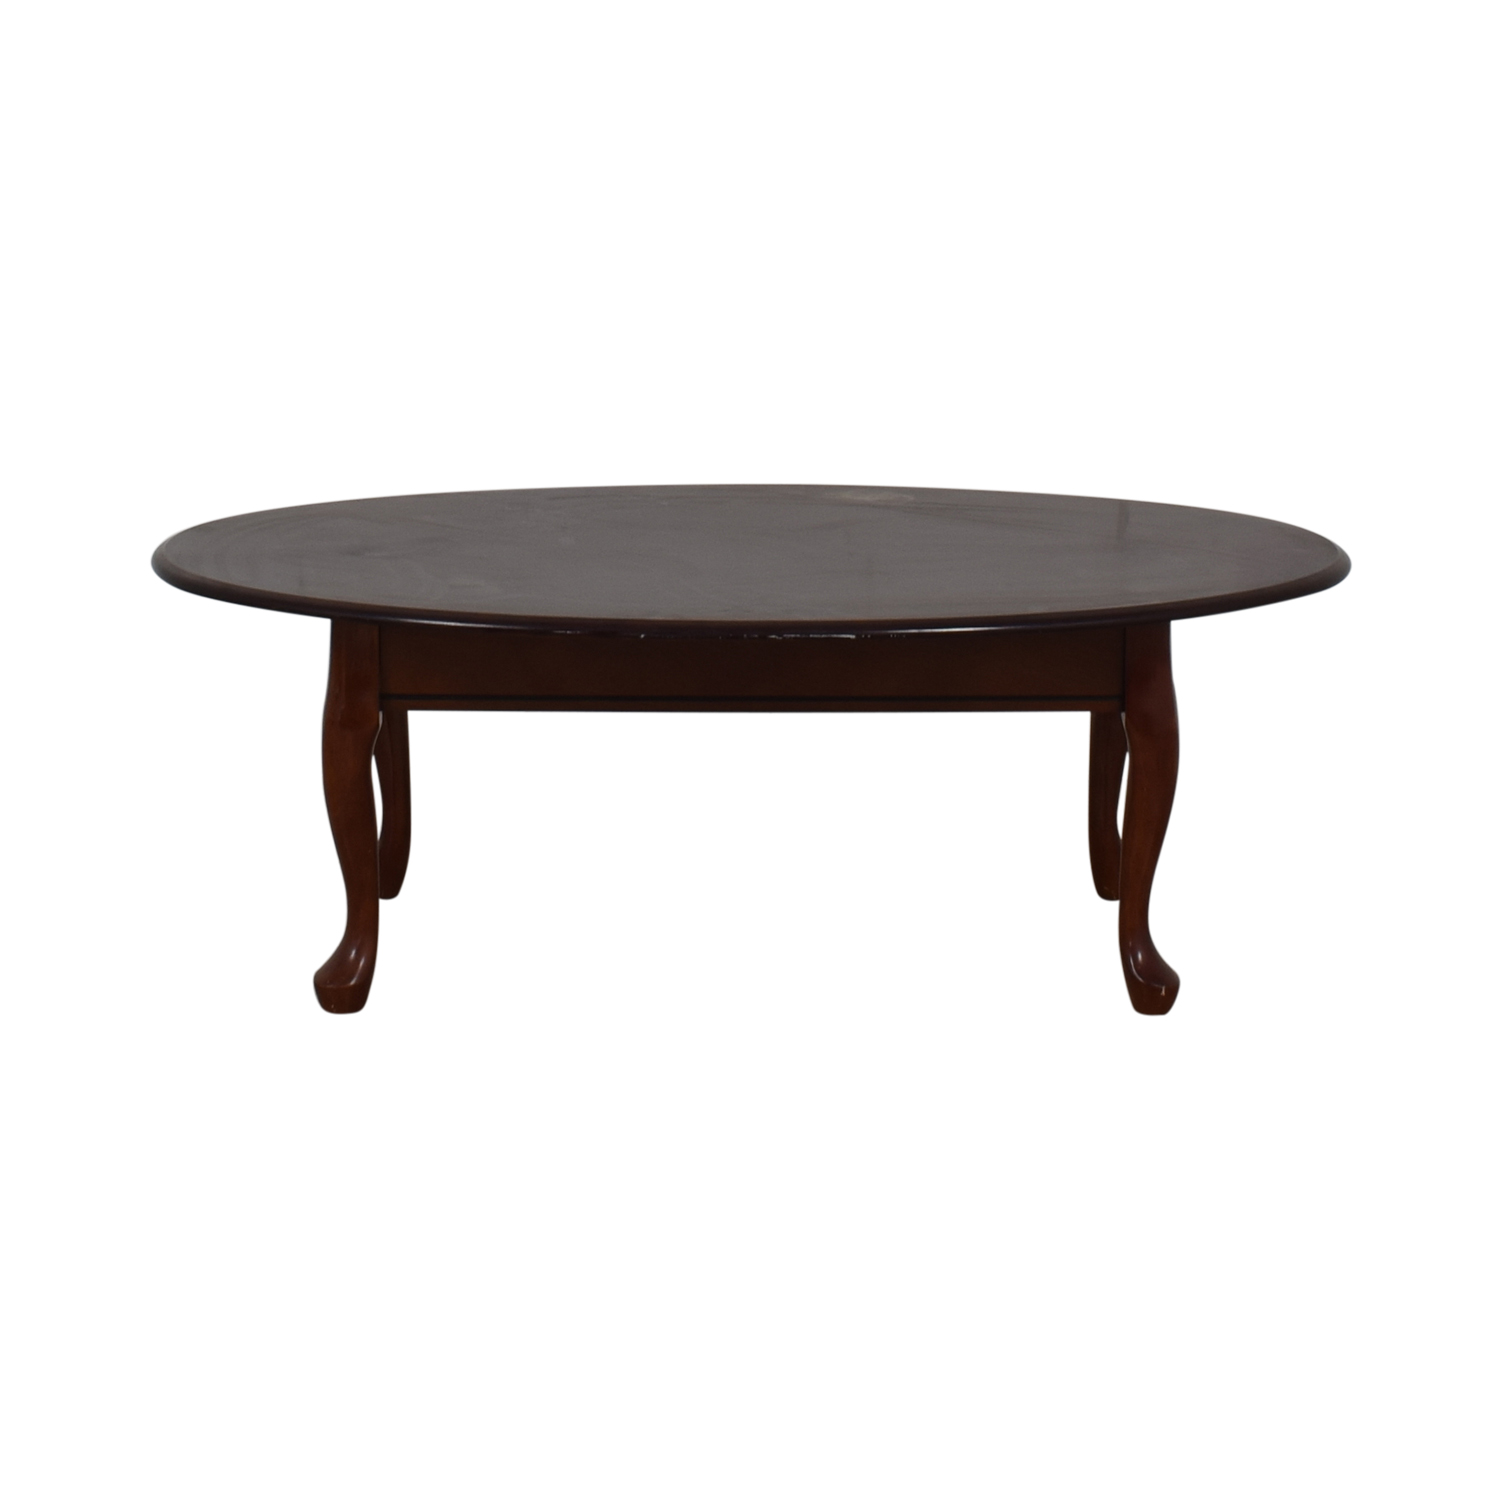 Cort Cherry Wood Coffee Table / Tables